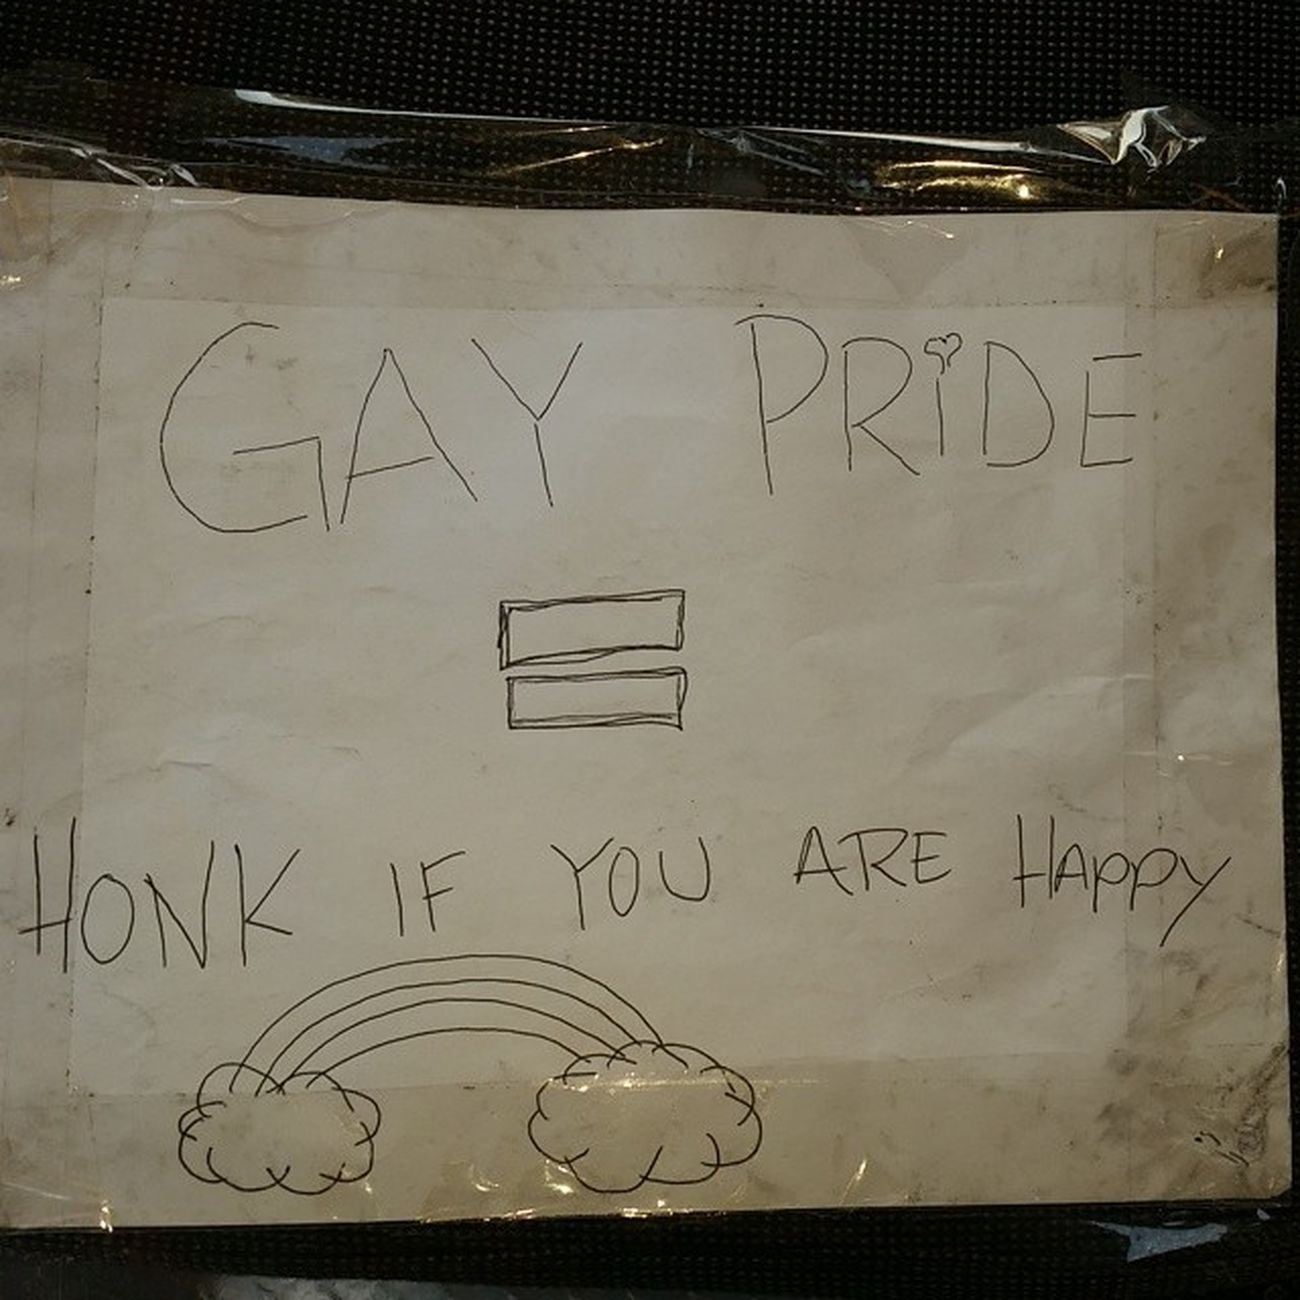 Found this on the back of my truck NOH8 EqualityForAll lol, but I got you bro @k20tony_fa5 ThisMeansWar